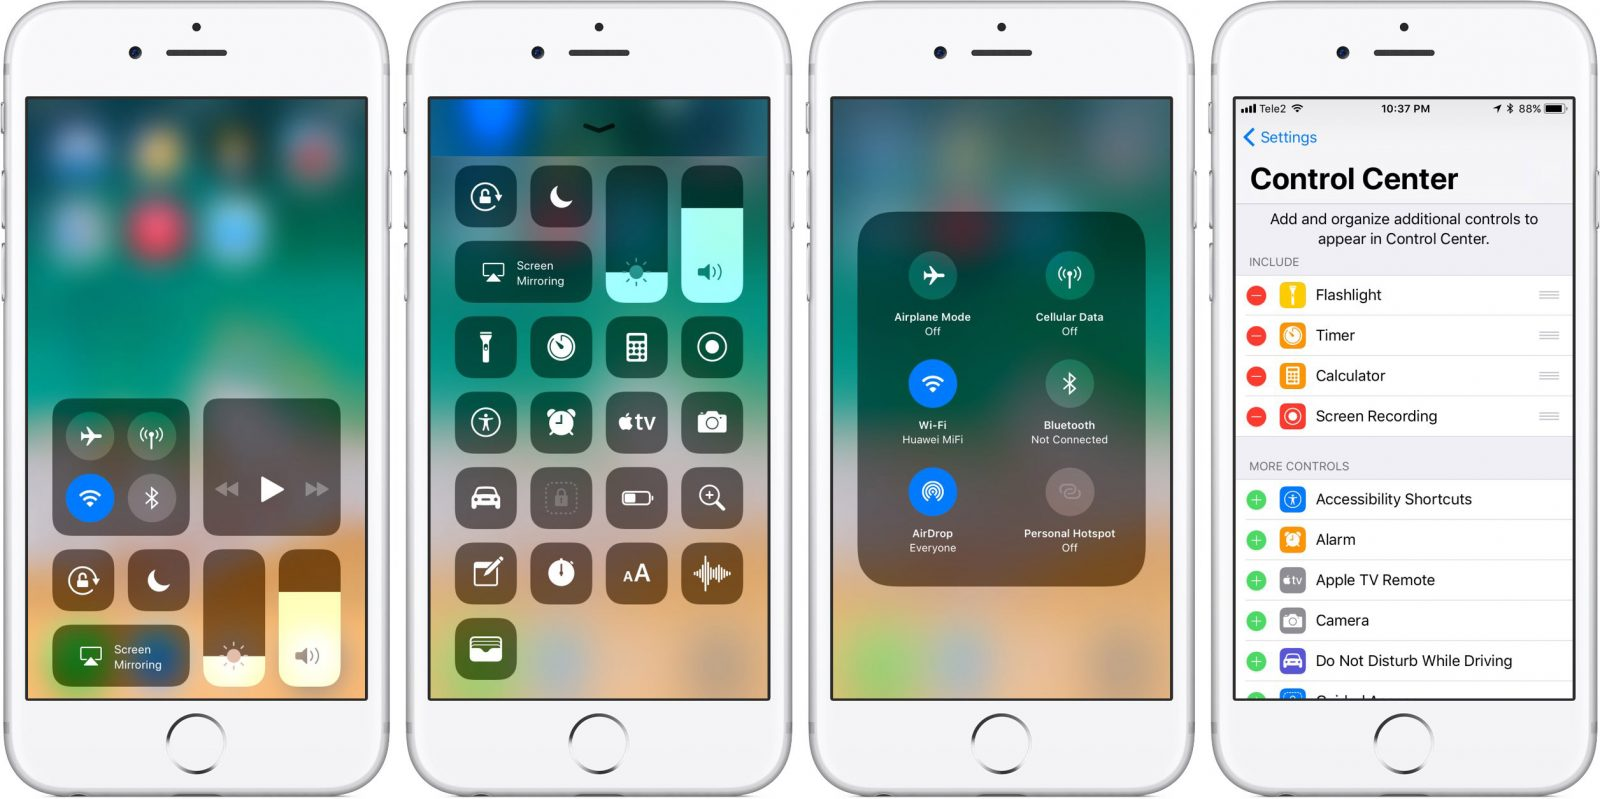 Notifications and Redesigned Control Center